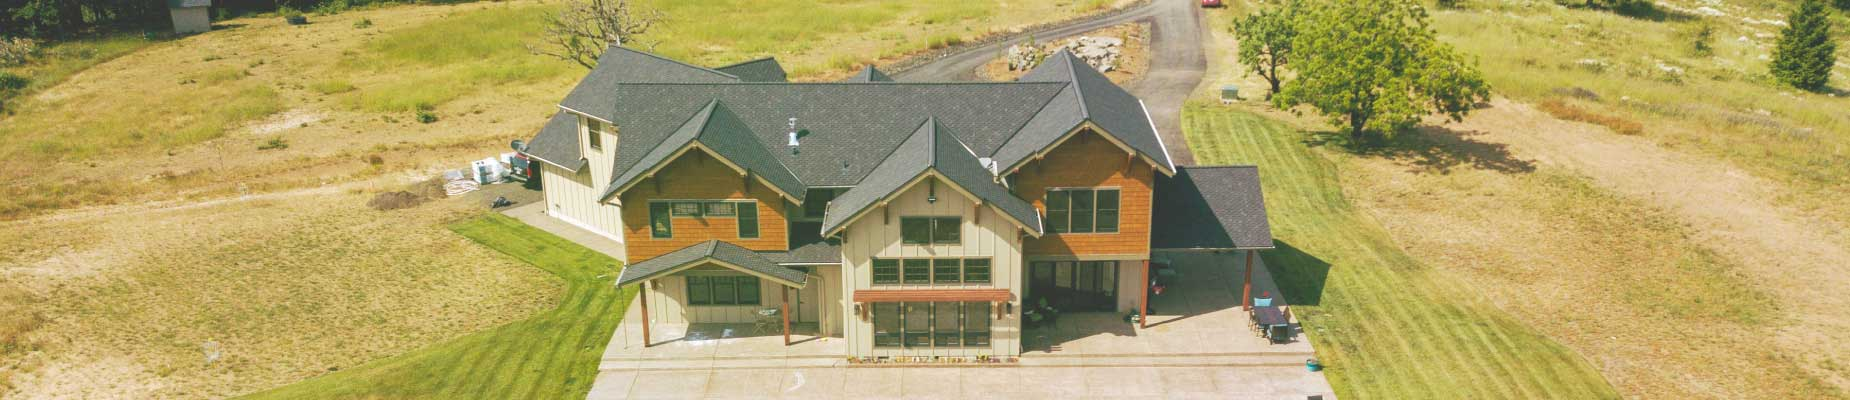 Build Your Custom Home with Mike Riddle Construction